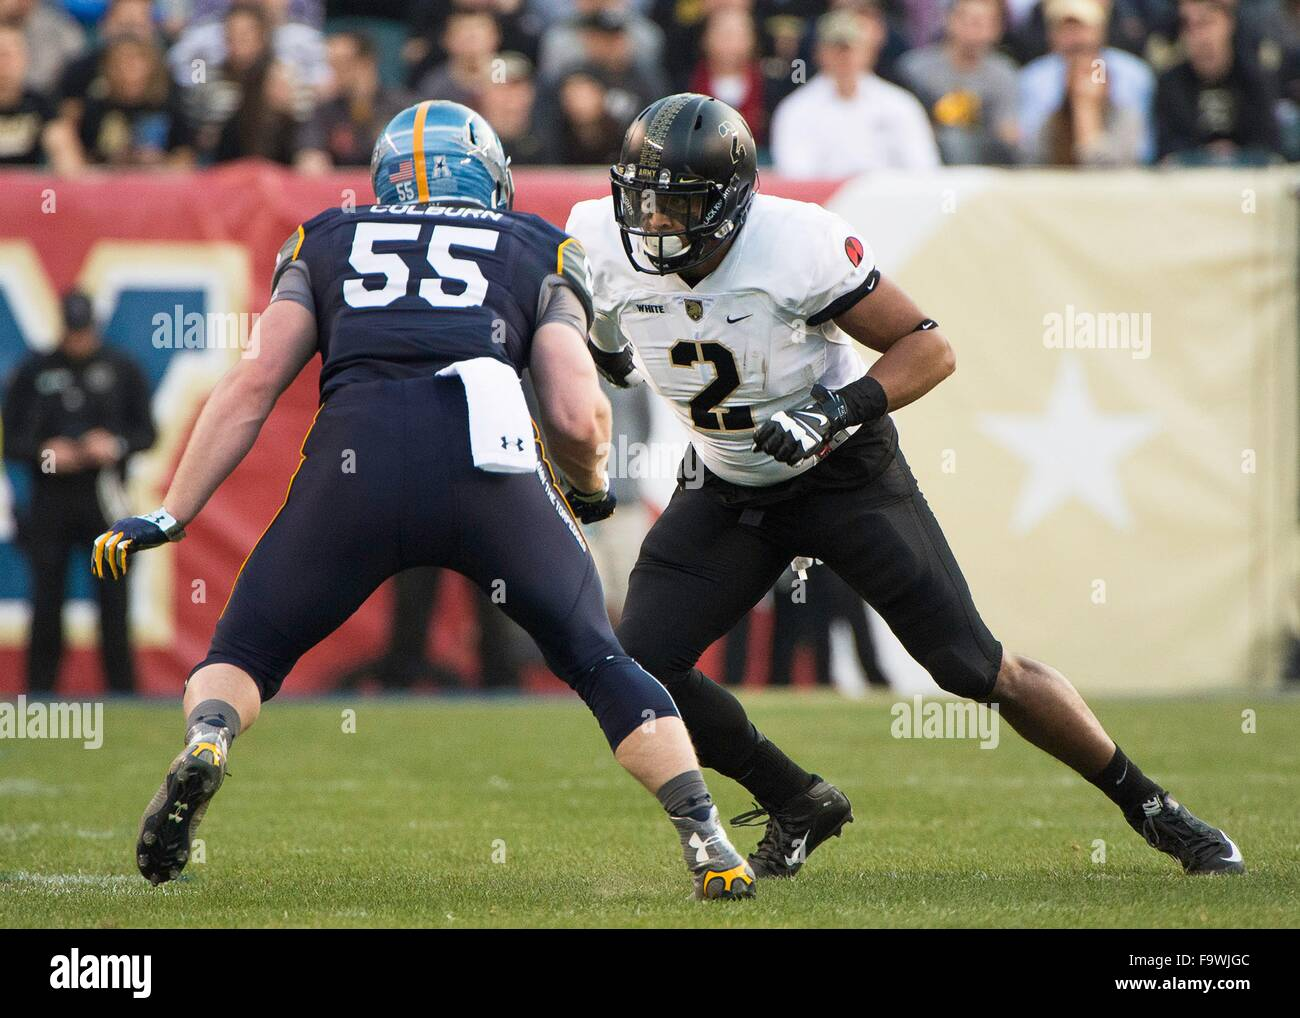 Navy Midshipmen Ted Colburn (55) blocks Army Black Knights tight end Kelvin White (2) during the NCAA football game - Stock Image